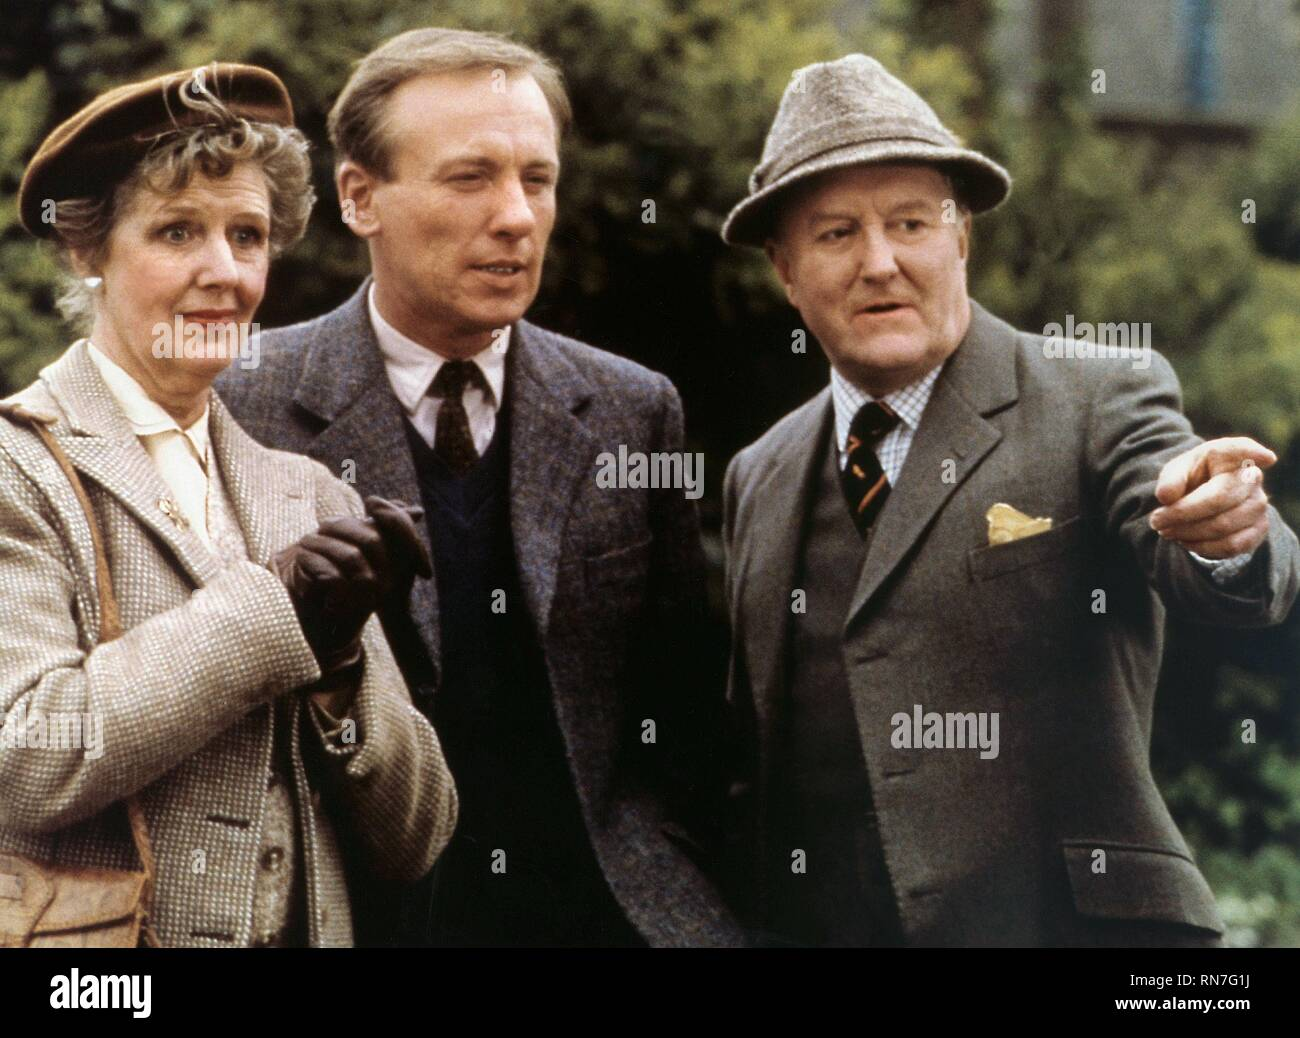 ALL CREATURES GREAT AND SMALL, ALISON LEWIS, CHRISTOPHER TIMOTHY , ROBERT HARDY, 1988 - Stock Image